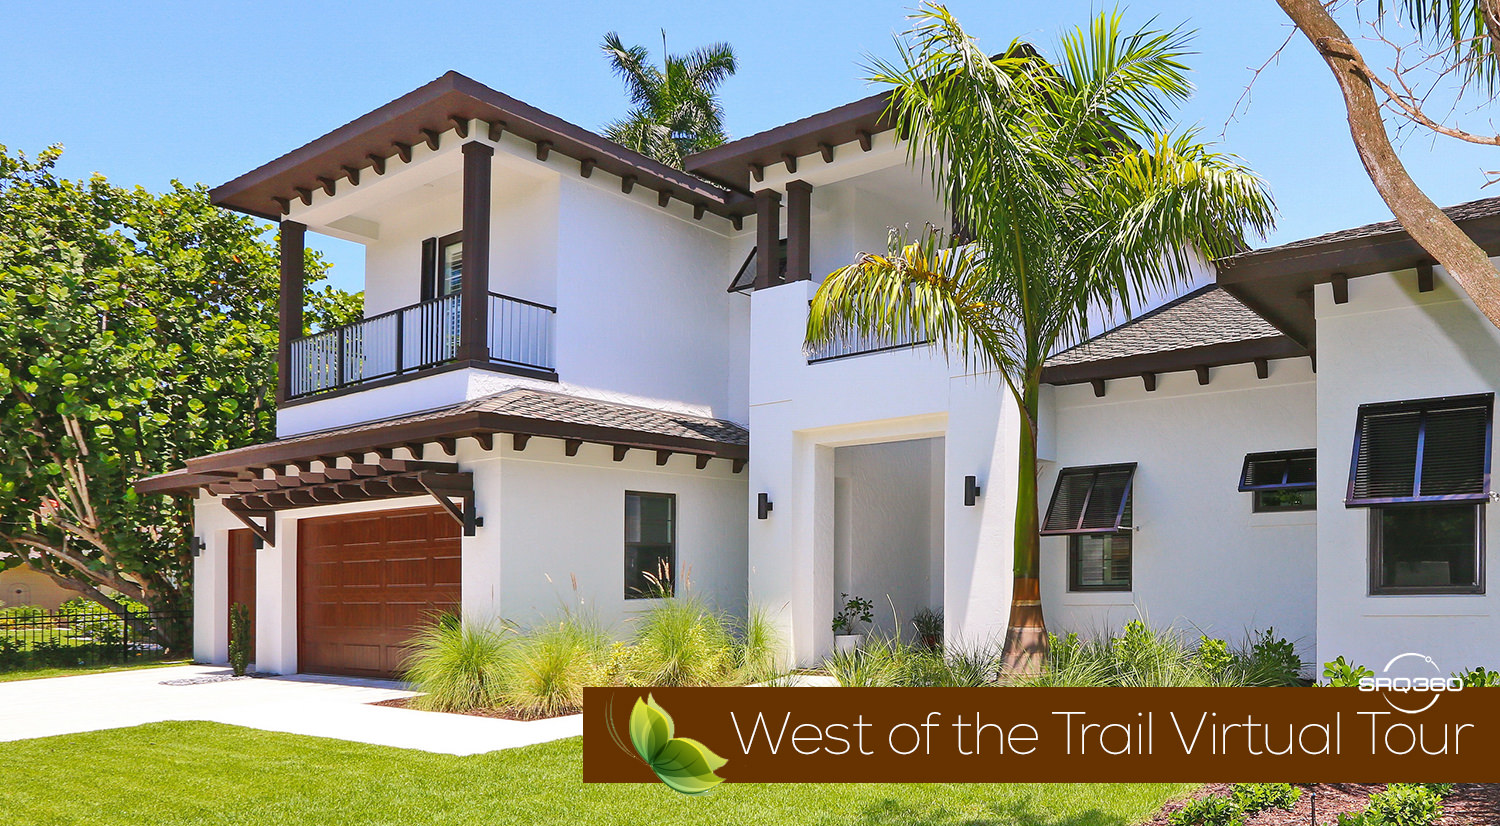 View the Virtual Tour for this West of the Trail Home in Sarasota